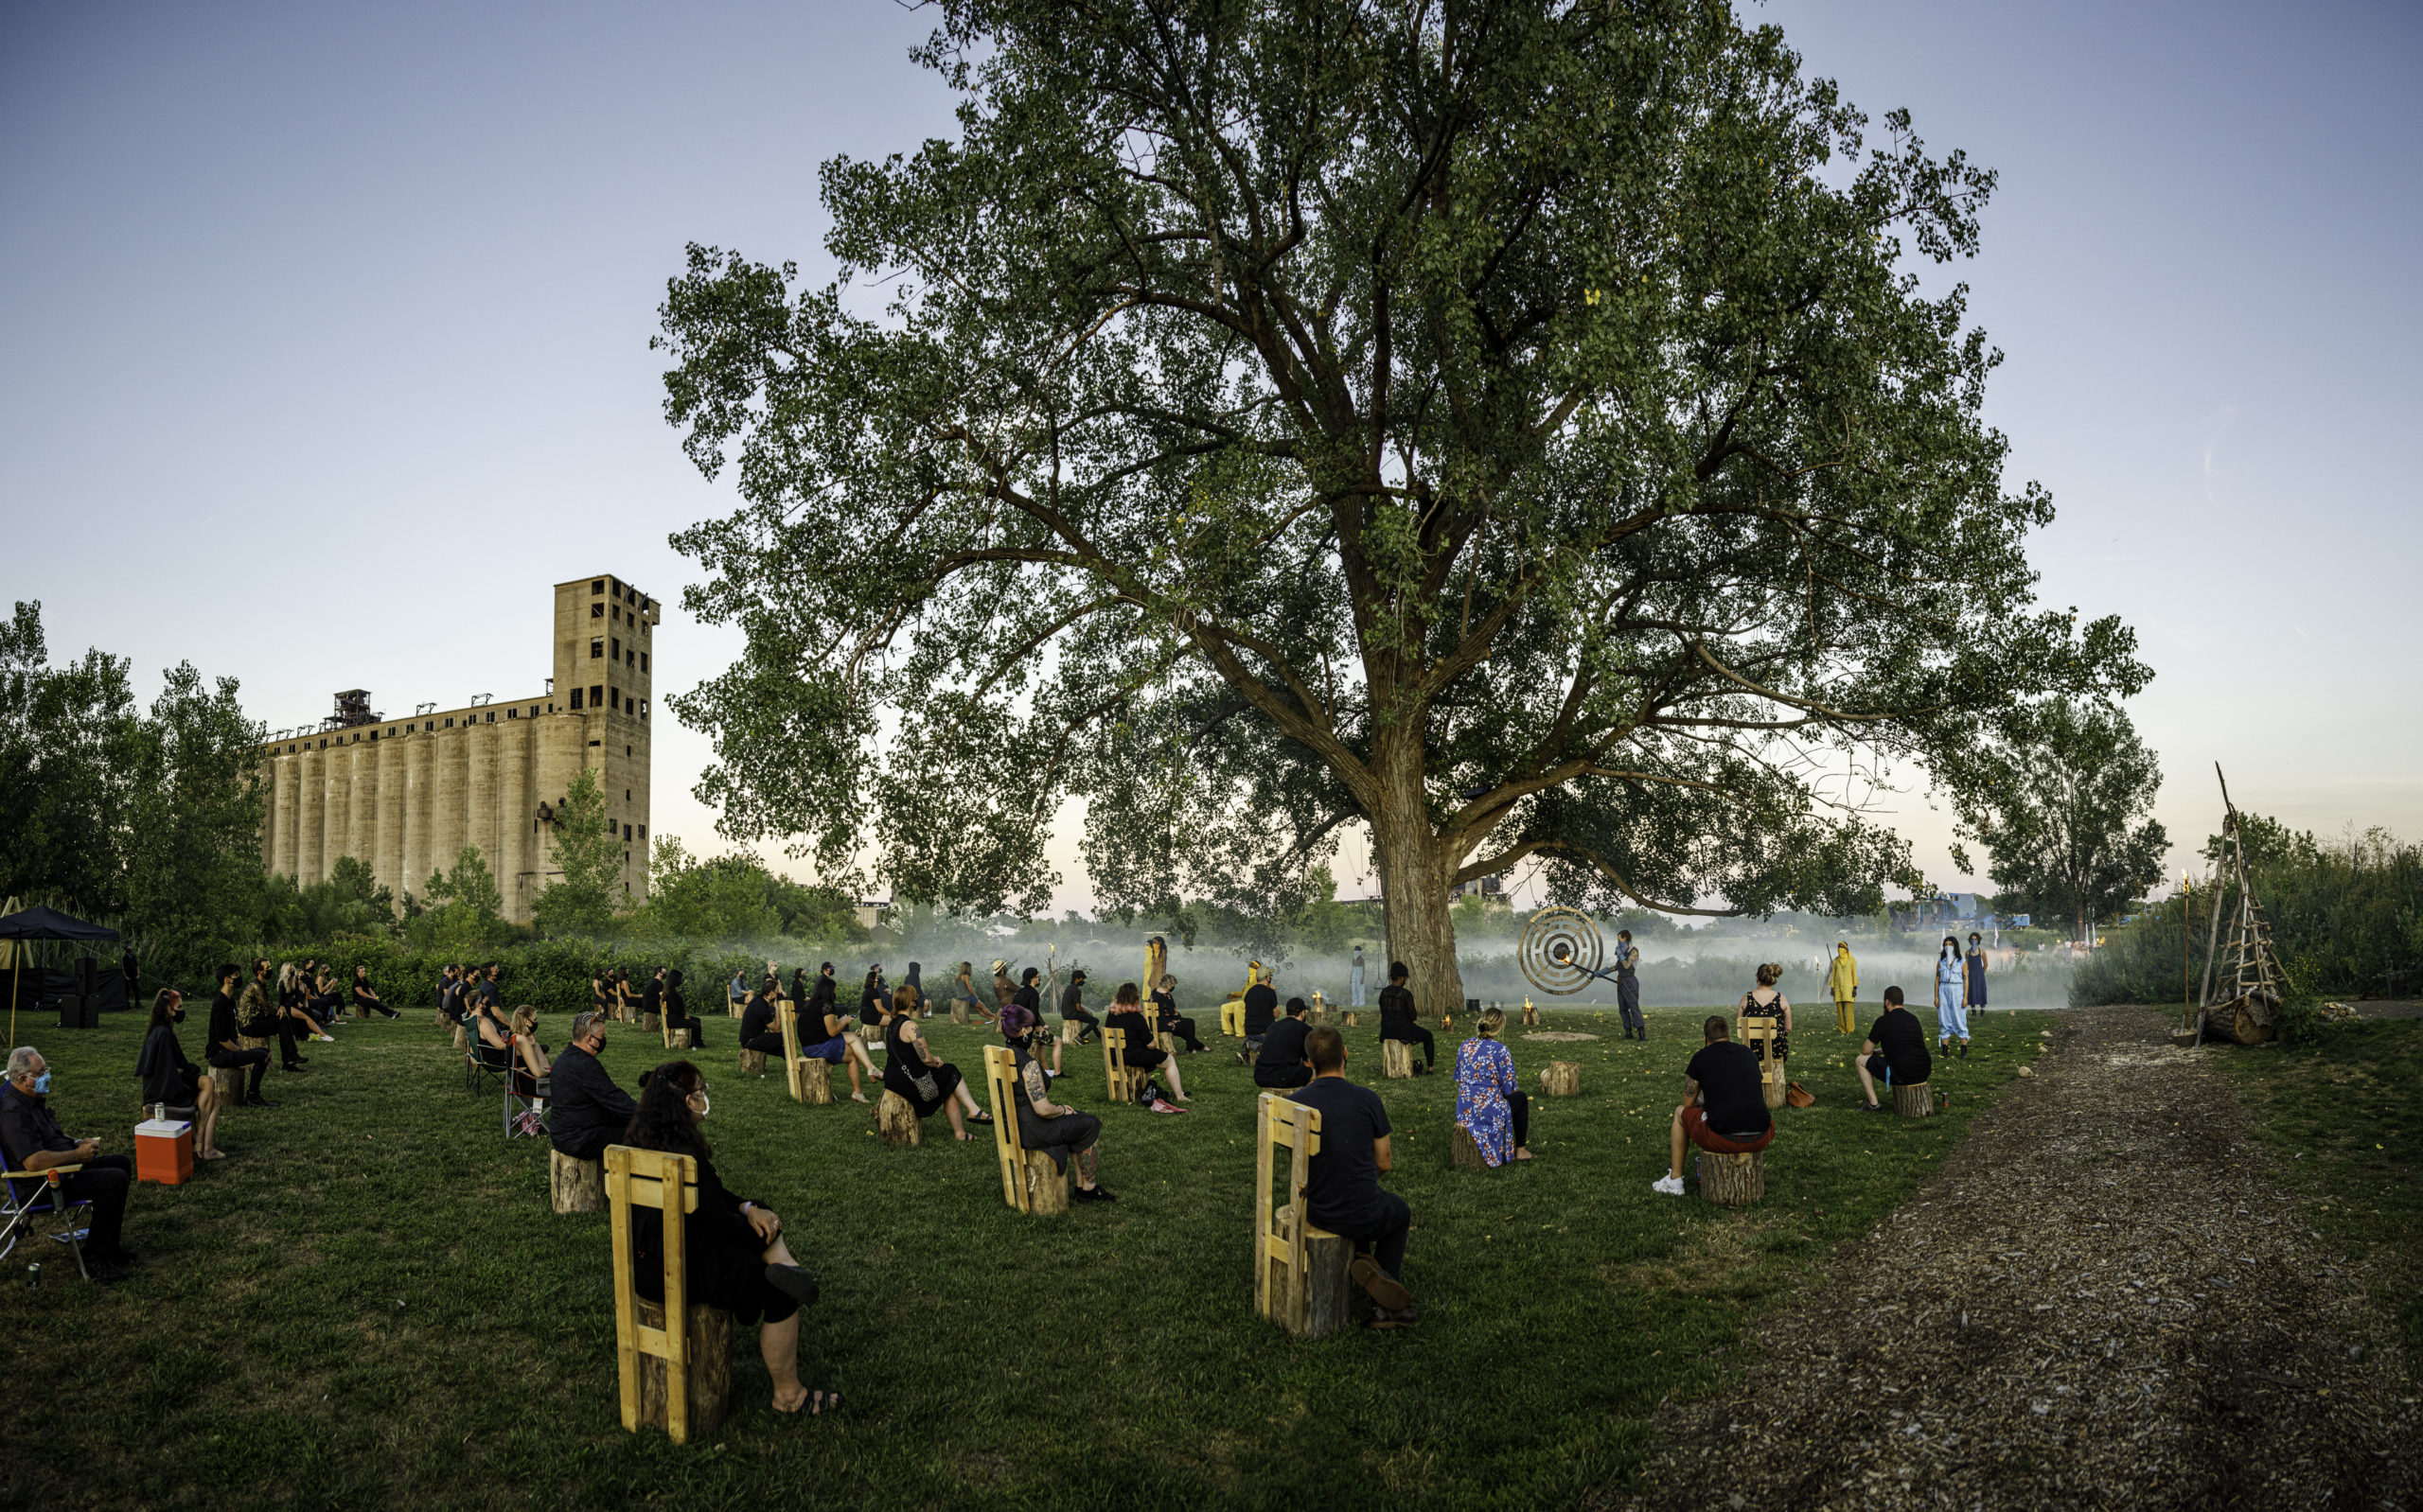 Photograph of a large tree in a grassy field with smoke blanketing the ground like mist, in the background the large imposing concrete grain elevator, with individual audience members seated in wooden chairs, each distanced from one another, around the tree.